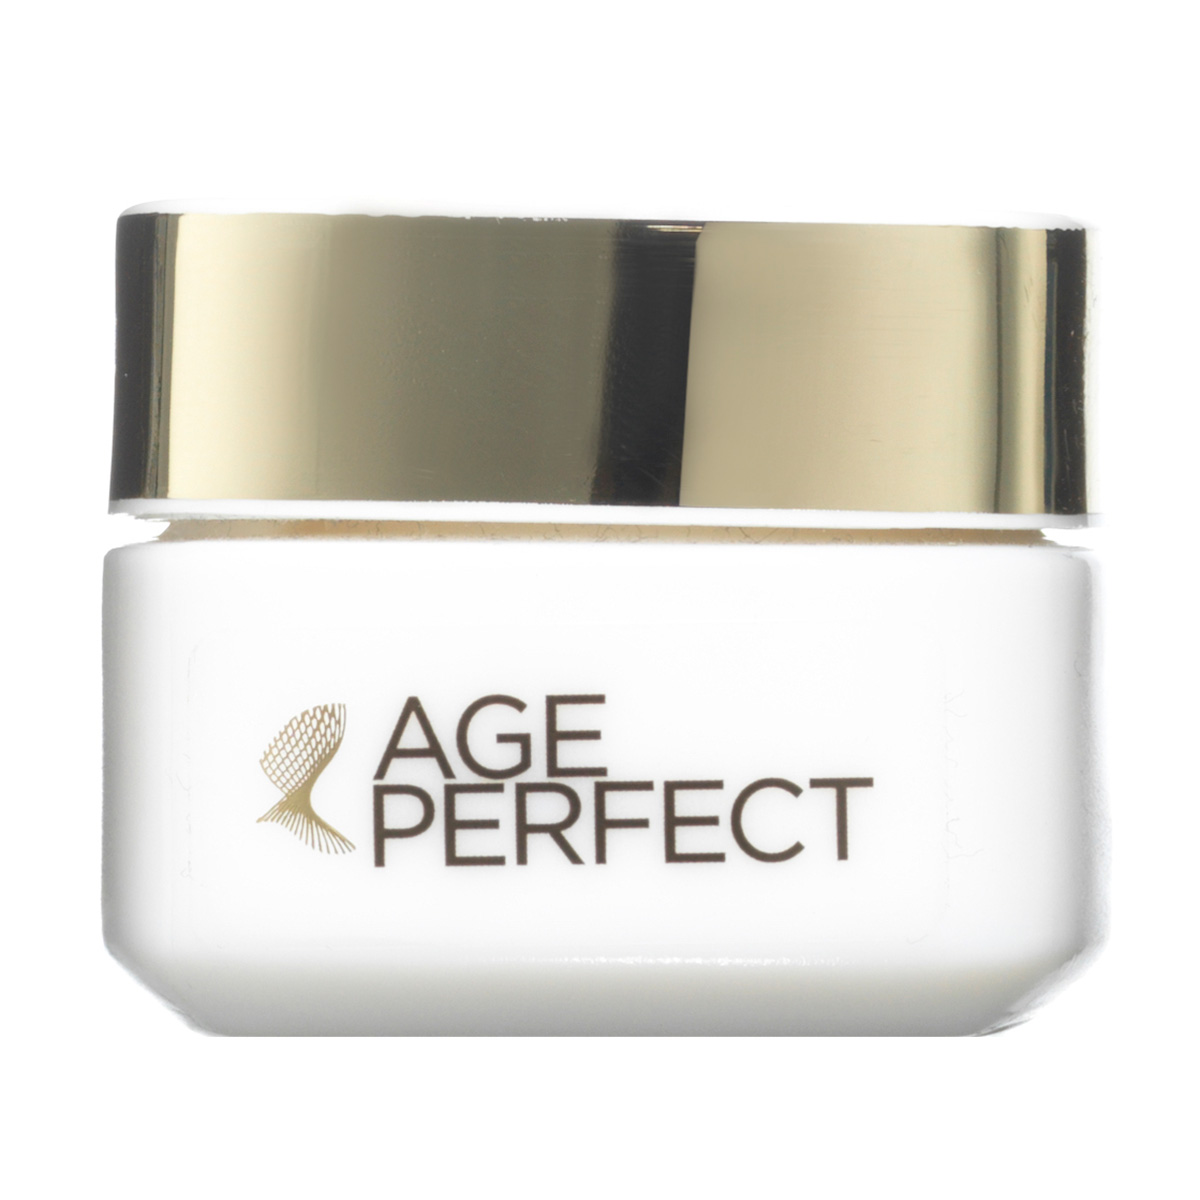 L'Oréal Paris Age Perfect Moisturising Eye Care - 15 ml Øjencreme til moden hud